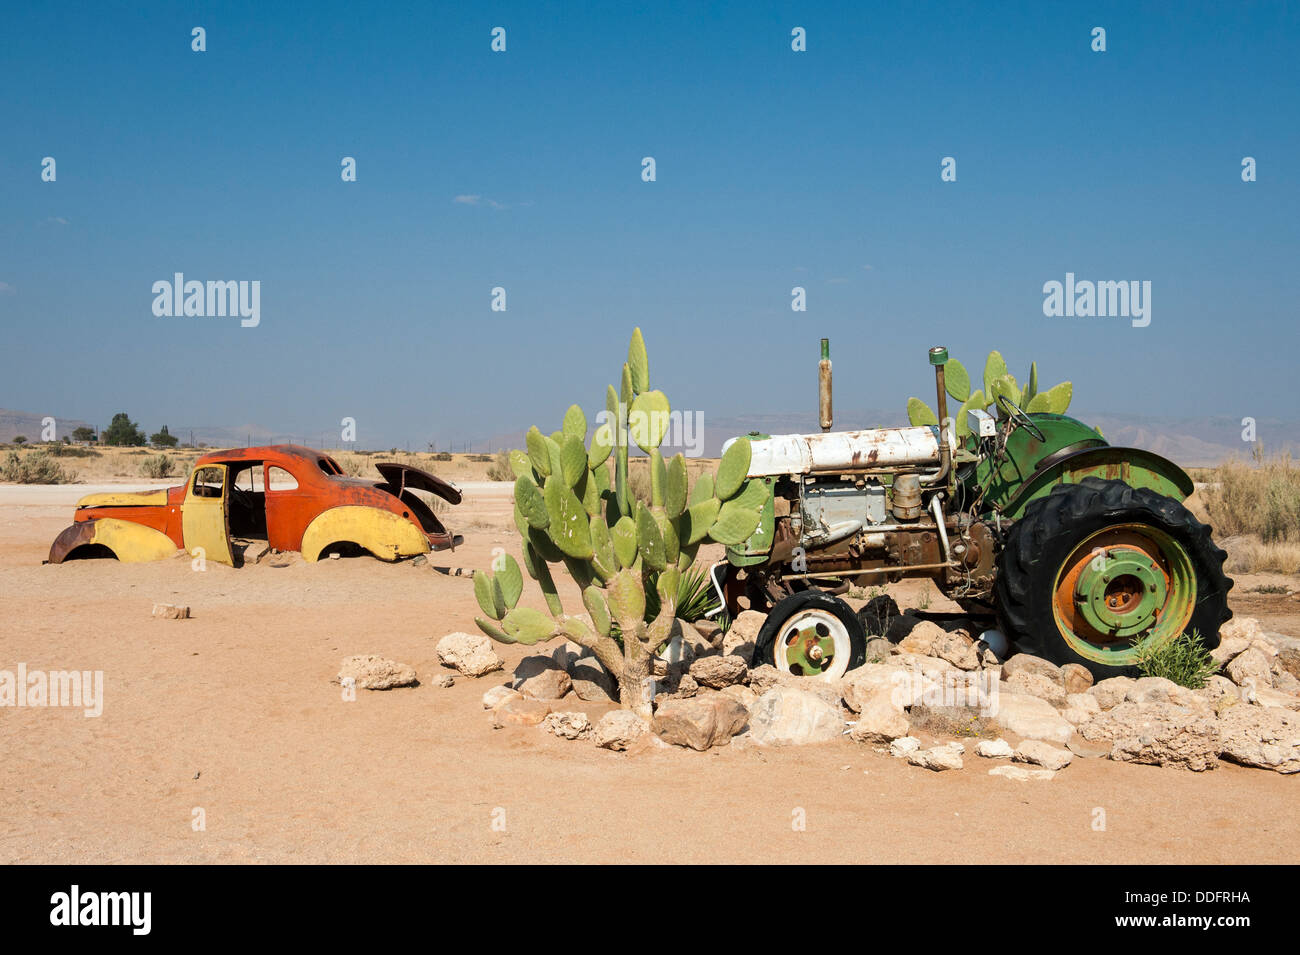 Car and tractor wreck at Solitaire, Khomas region, Namibia - Stock Image